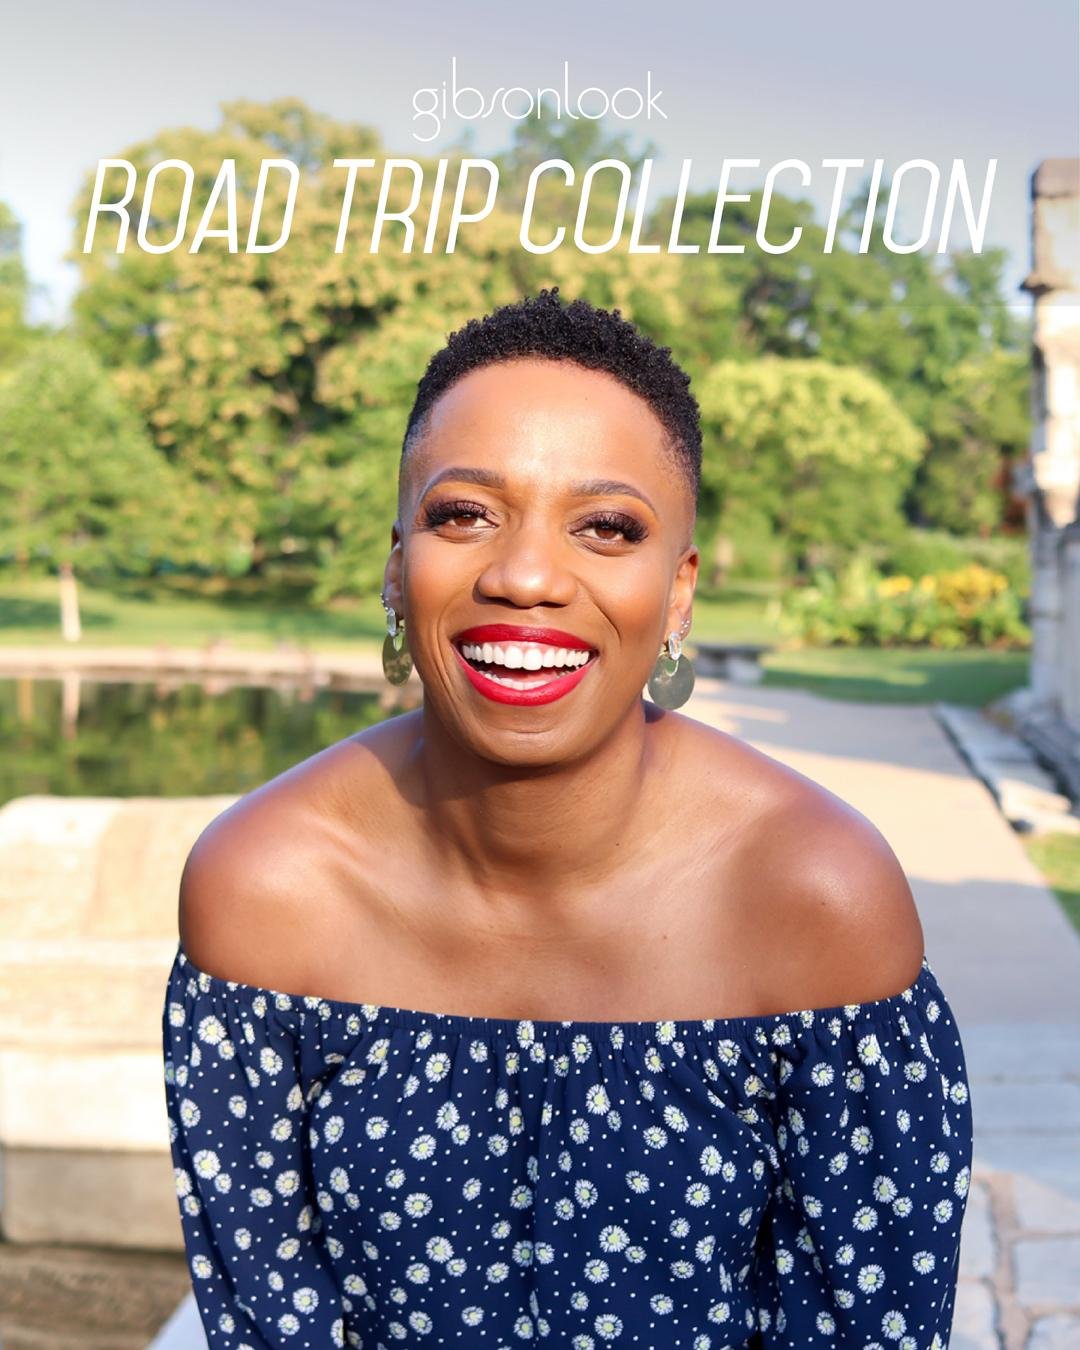 Introducing The Road Trip Collection In Collaboration With Economy Of Style!